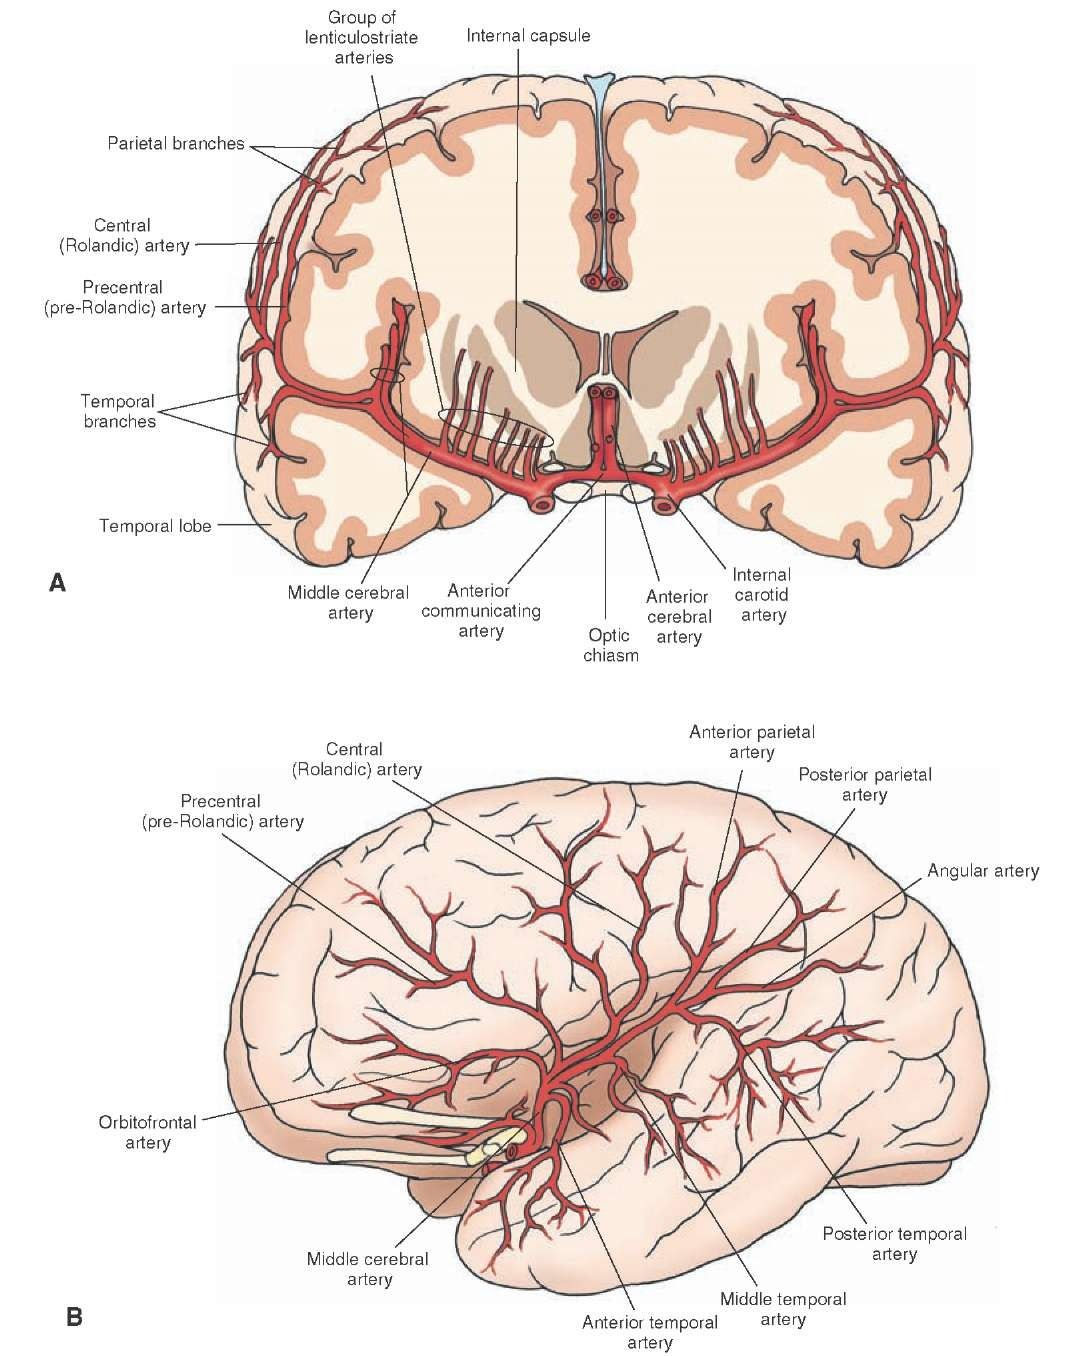 Major Branches Of The Middle Cerebral Artery A Coronal Section